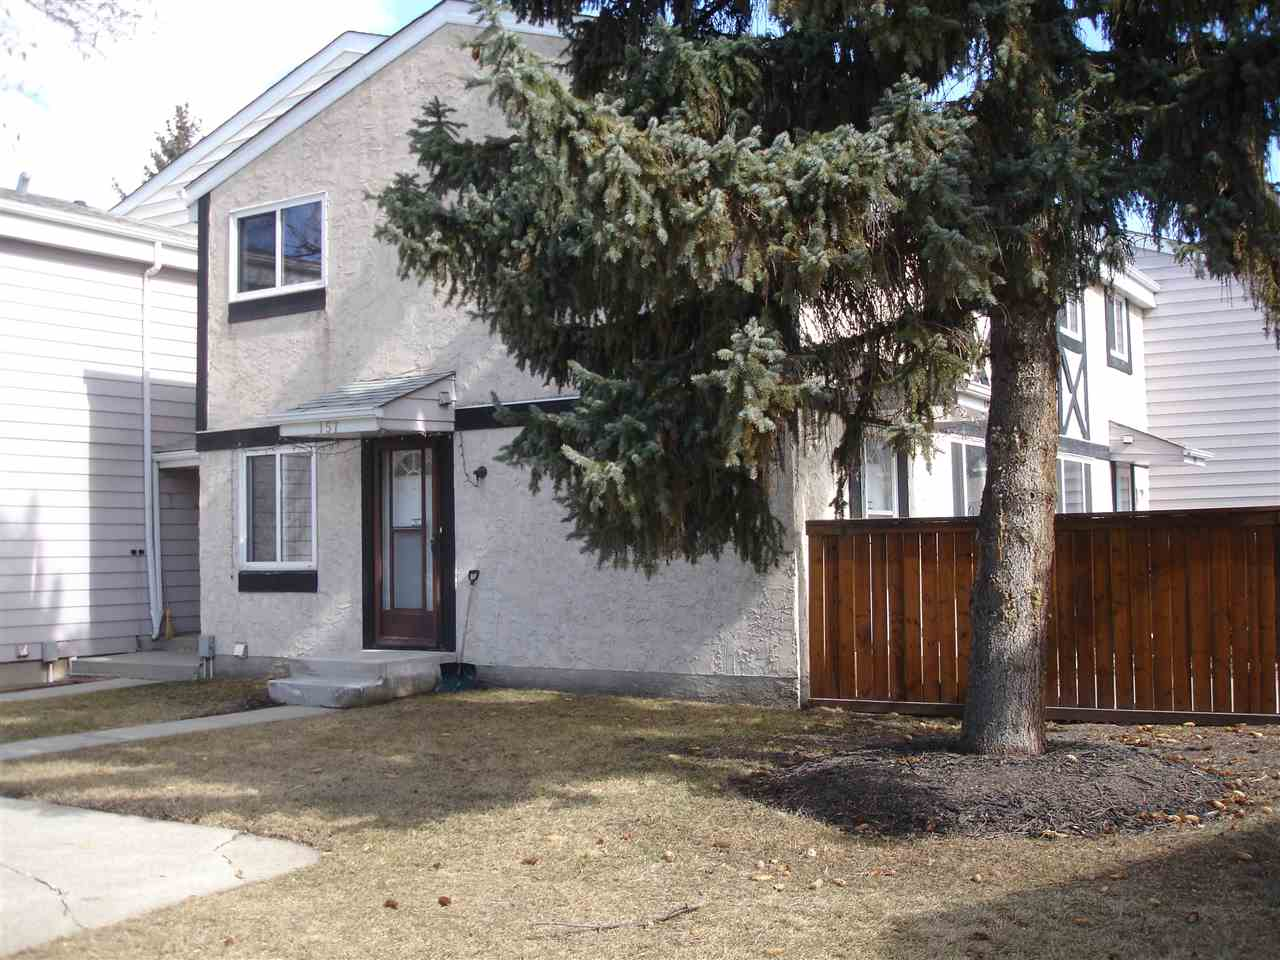 A great unit for the first time home buyers or investment opportunity. Primrose Gardens is ideally located close to West Edmonton mall. Approx 1000 sq ft 3 bedroom two storey. A short walk to schools, shopping, recreation and transportation. Newer carpets, some new paint. Move in and make it your own.